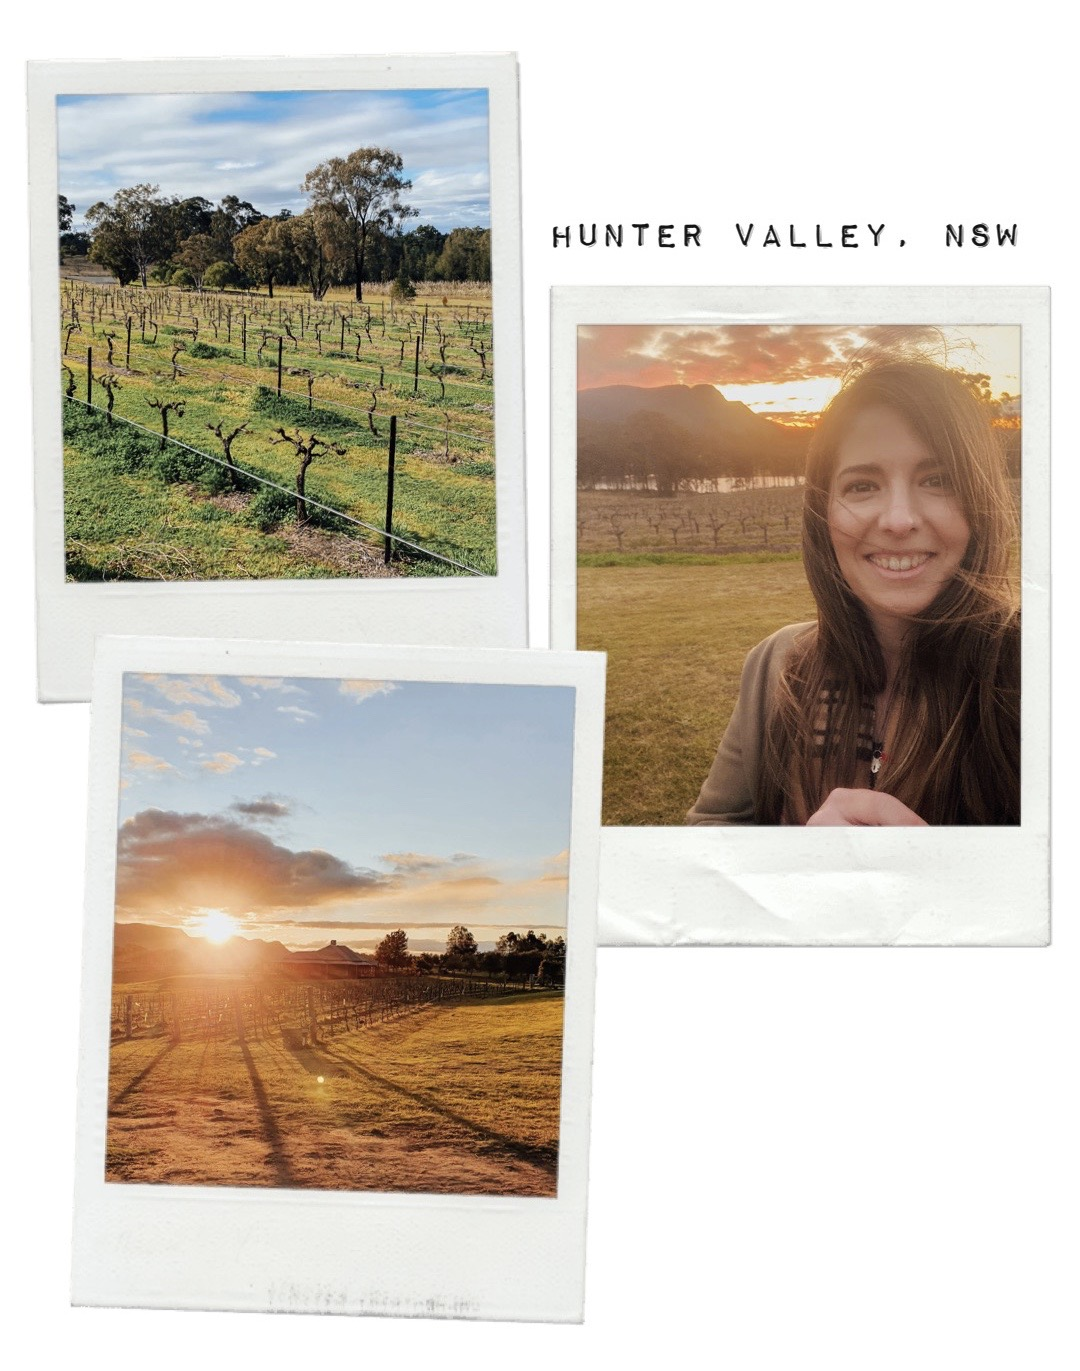 Vineyard photos of me in the Hunter Valley